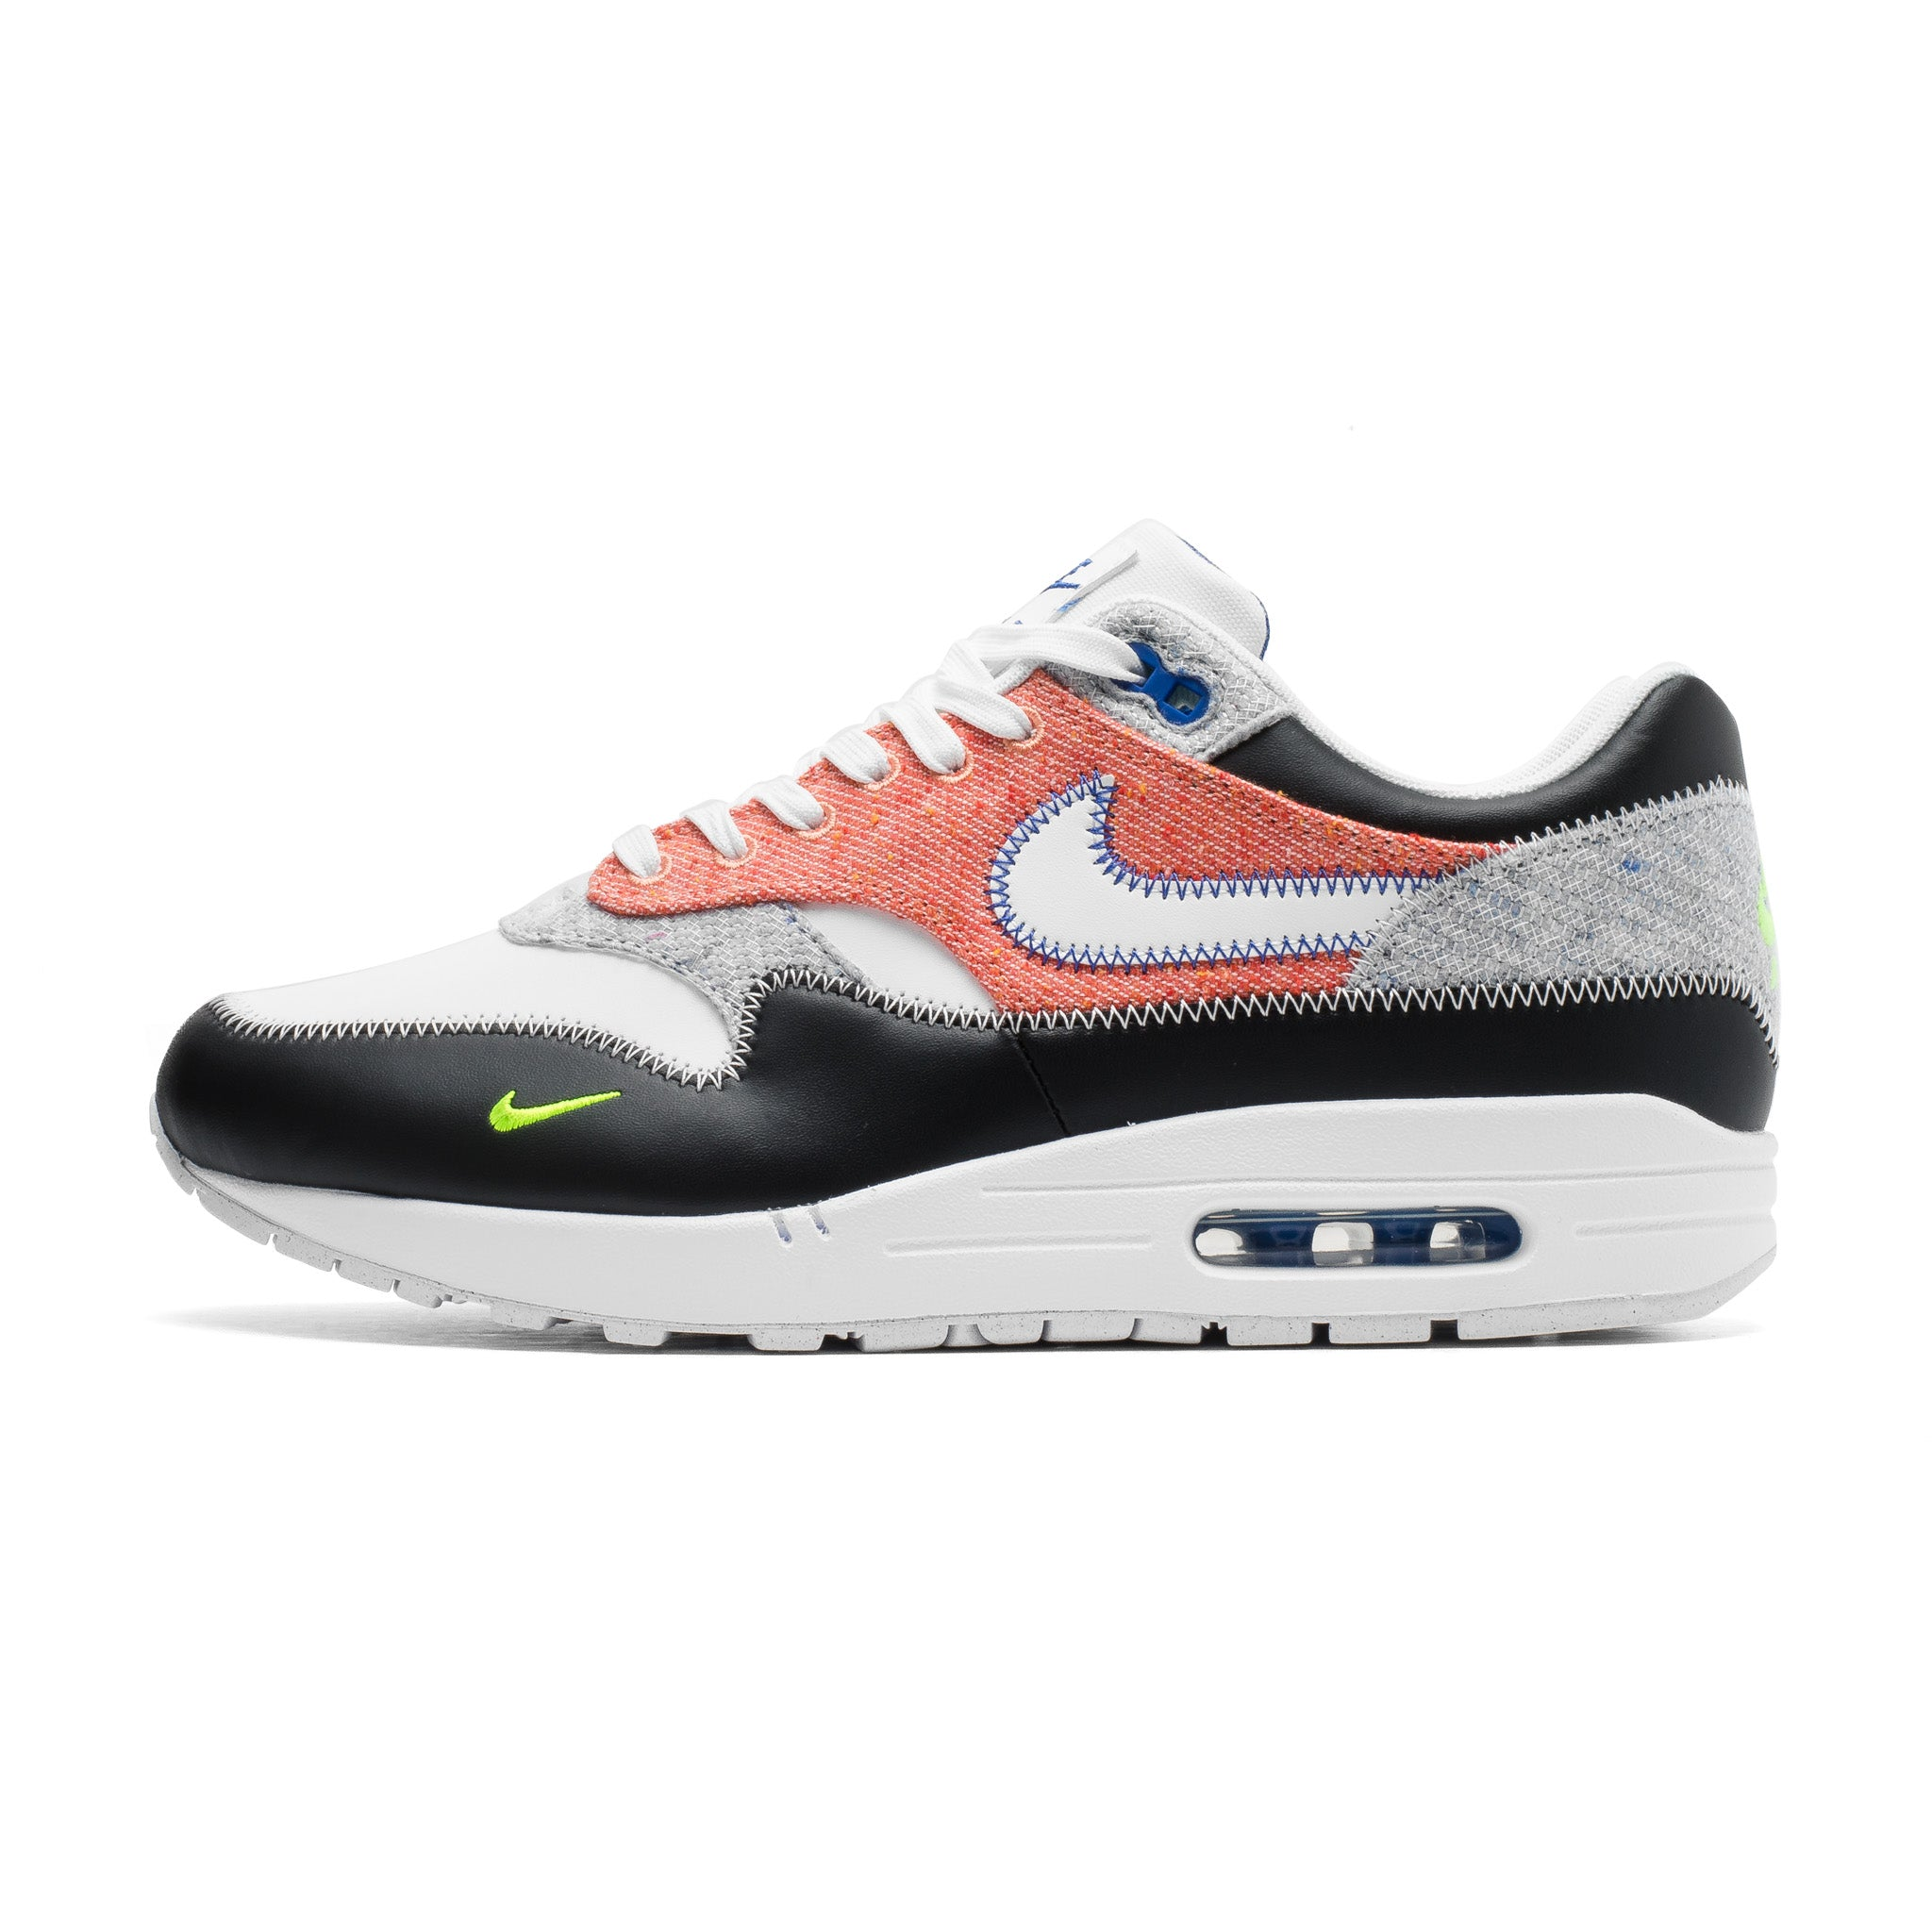 Air Max 1 CT1643-100 White